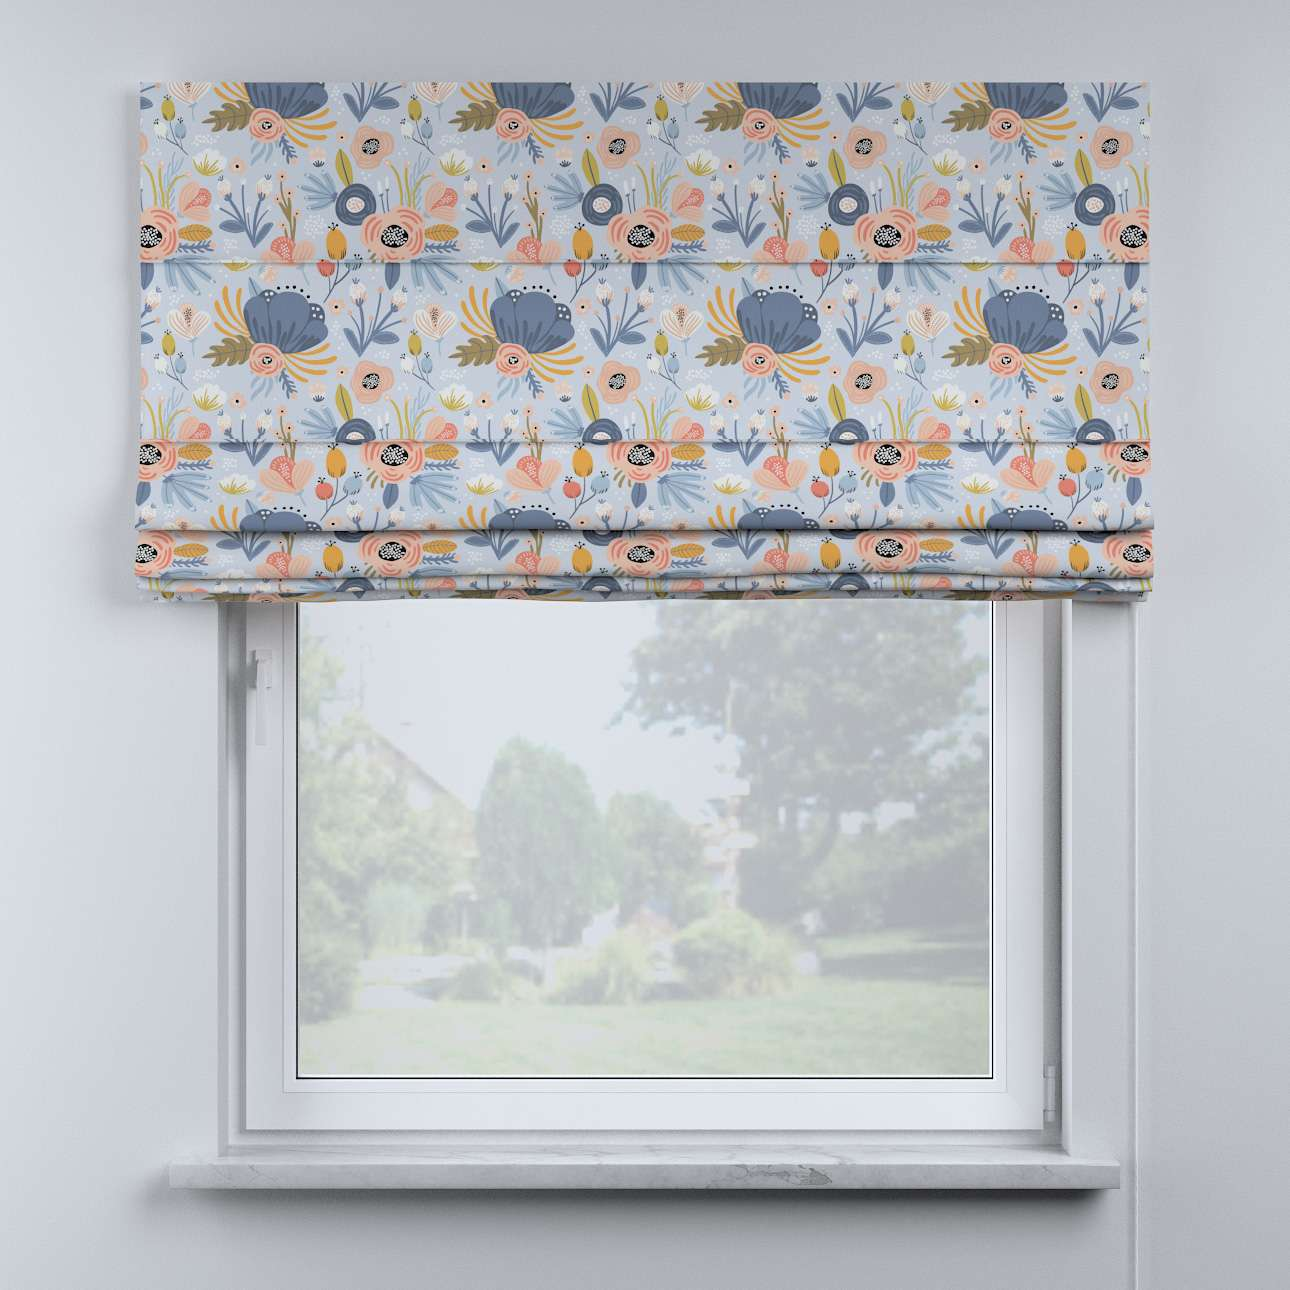 Billie roman blind in collection Magic Collection, fabric: 500-05